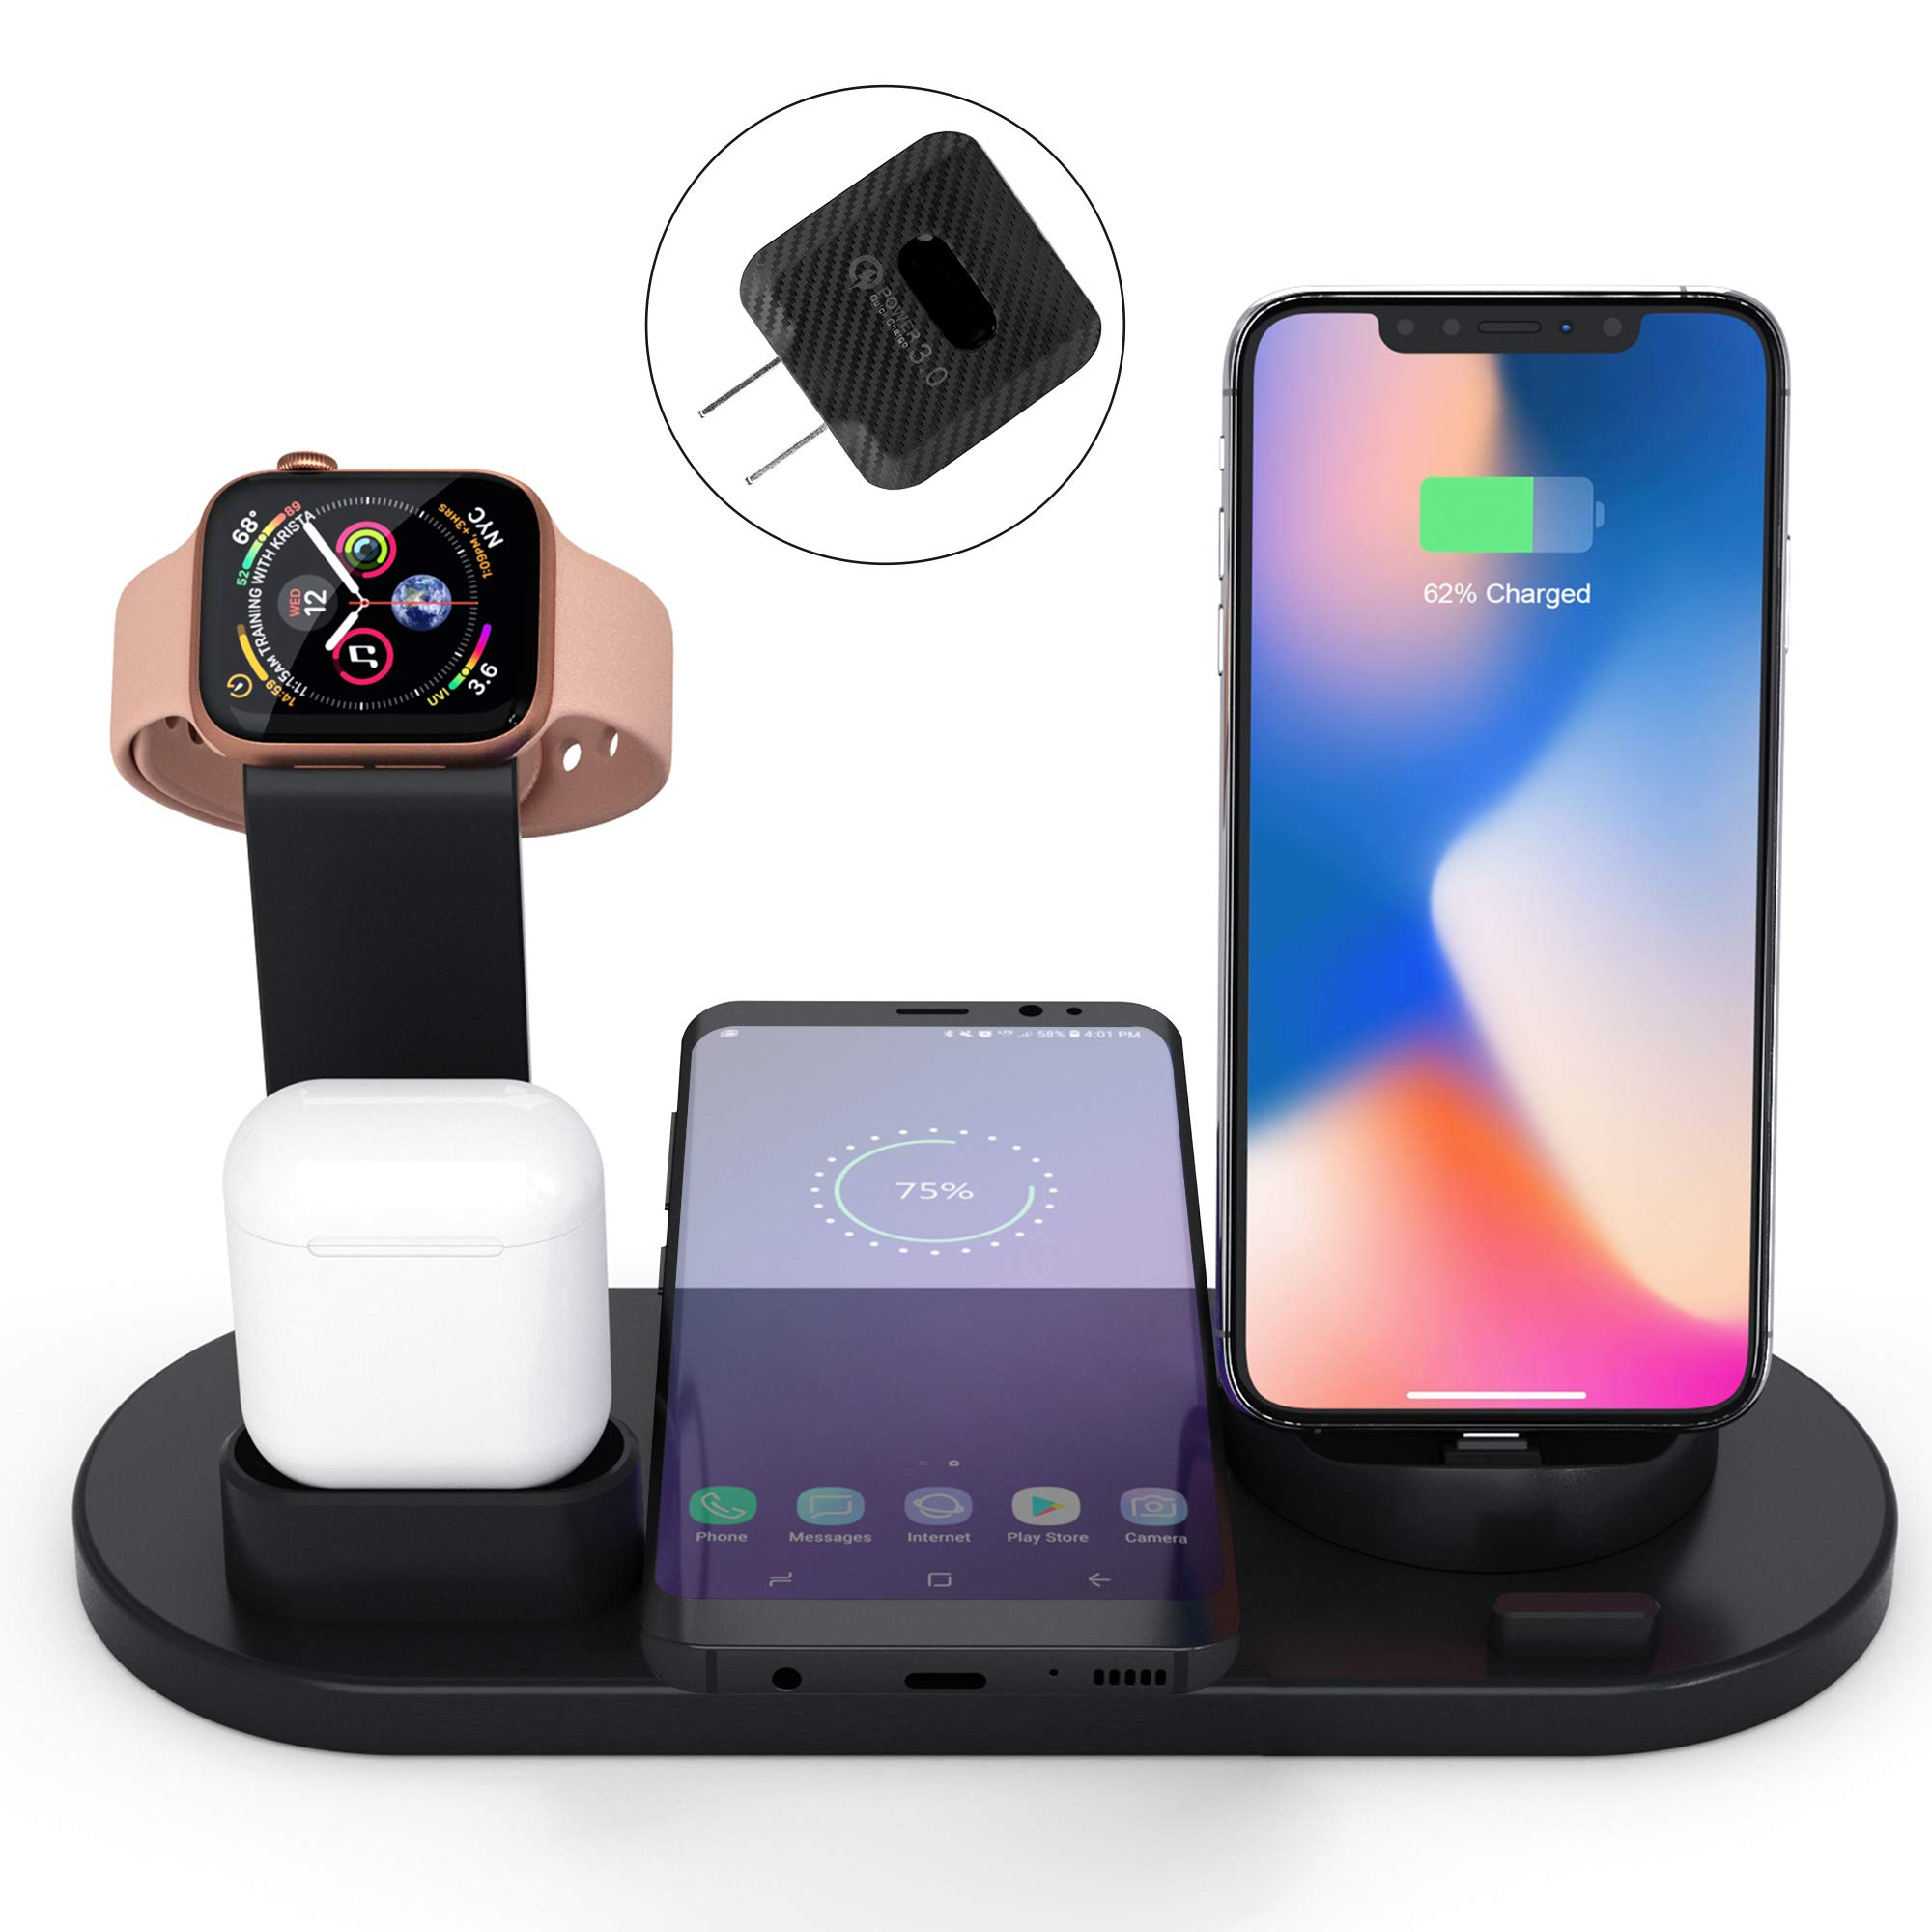 Elaime Fast Wireless Charger, 4 in 1 Wireless Charging Dock Compatible with Apple Watch 5 and airpods, Qi Wireless Charging Station Stand for iPhone 11 11 Pro Max X Xs XR Xs Max 8 8 Plus (Black) by Elaime